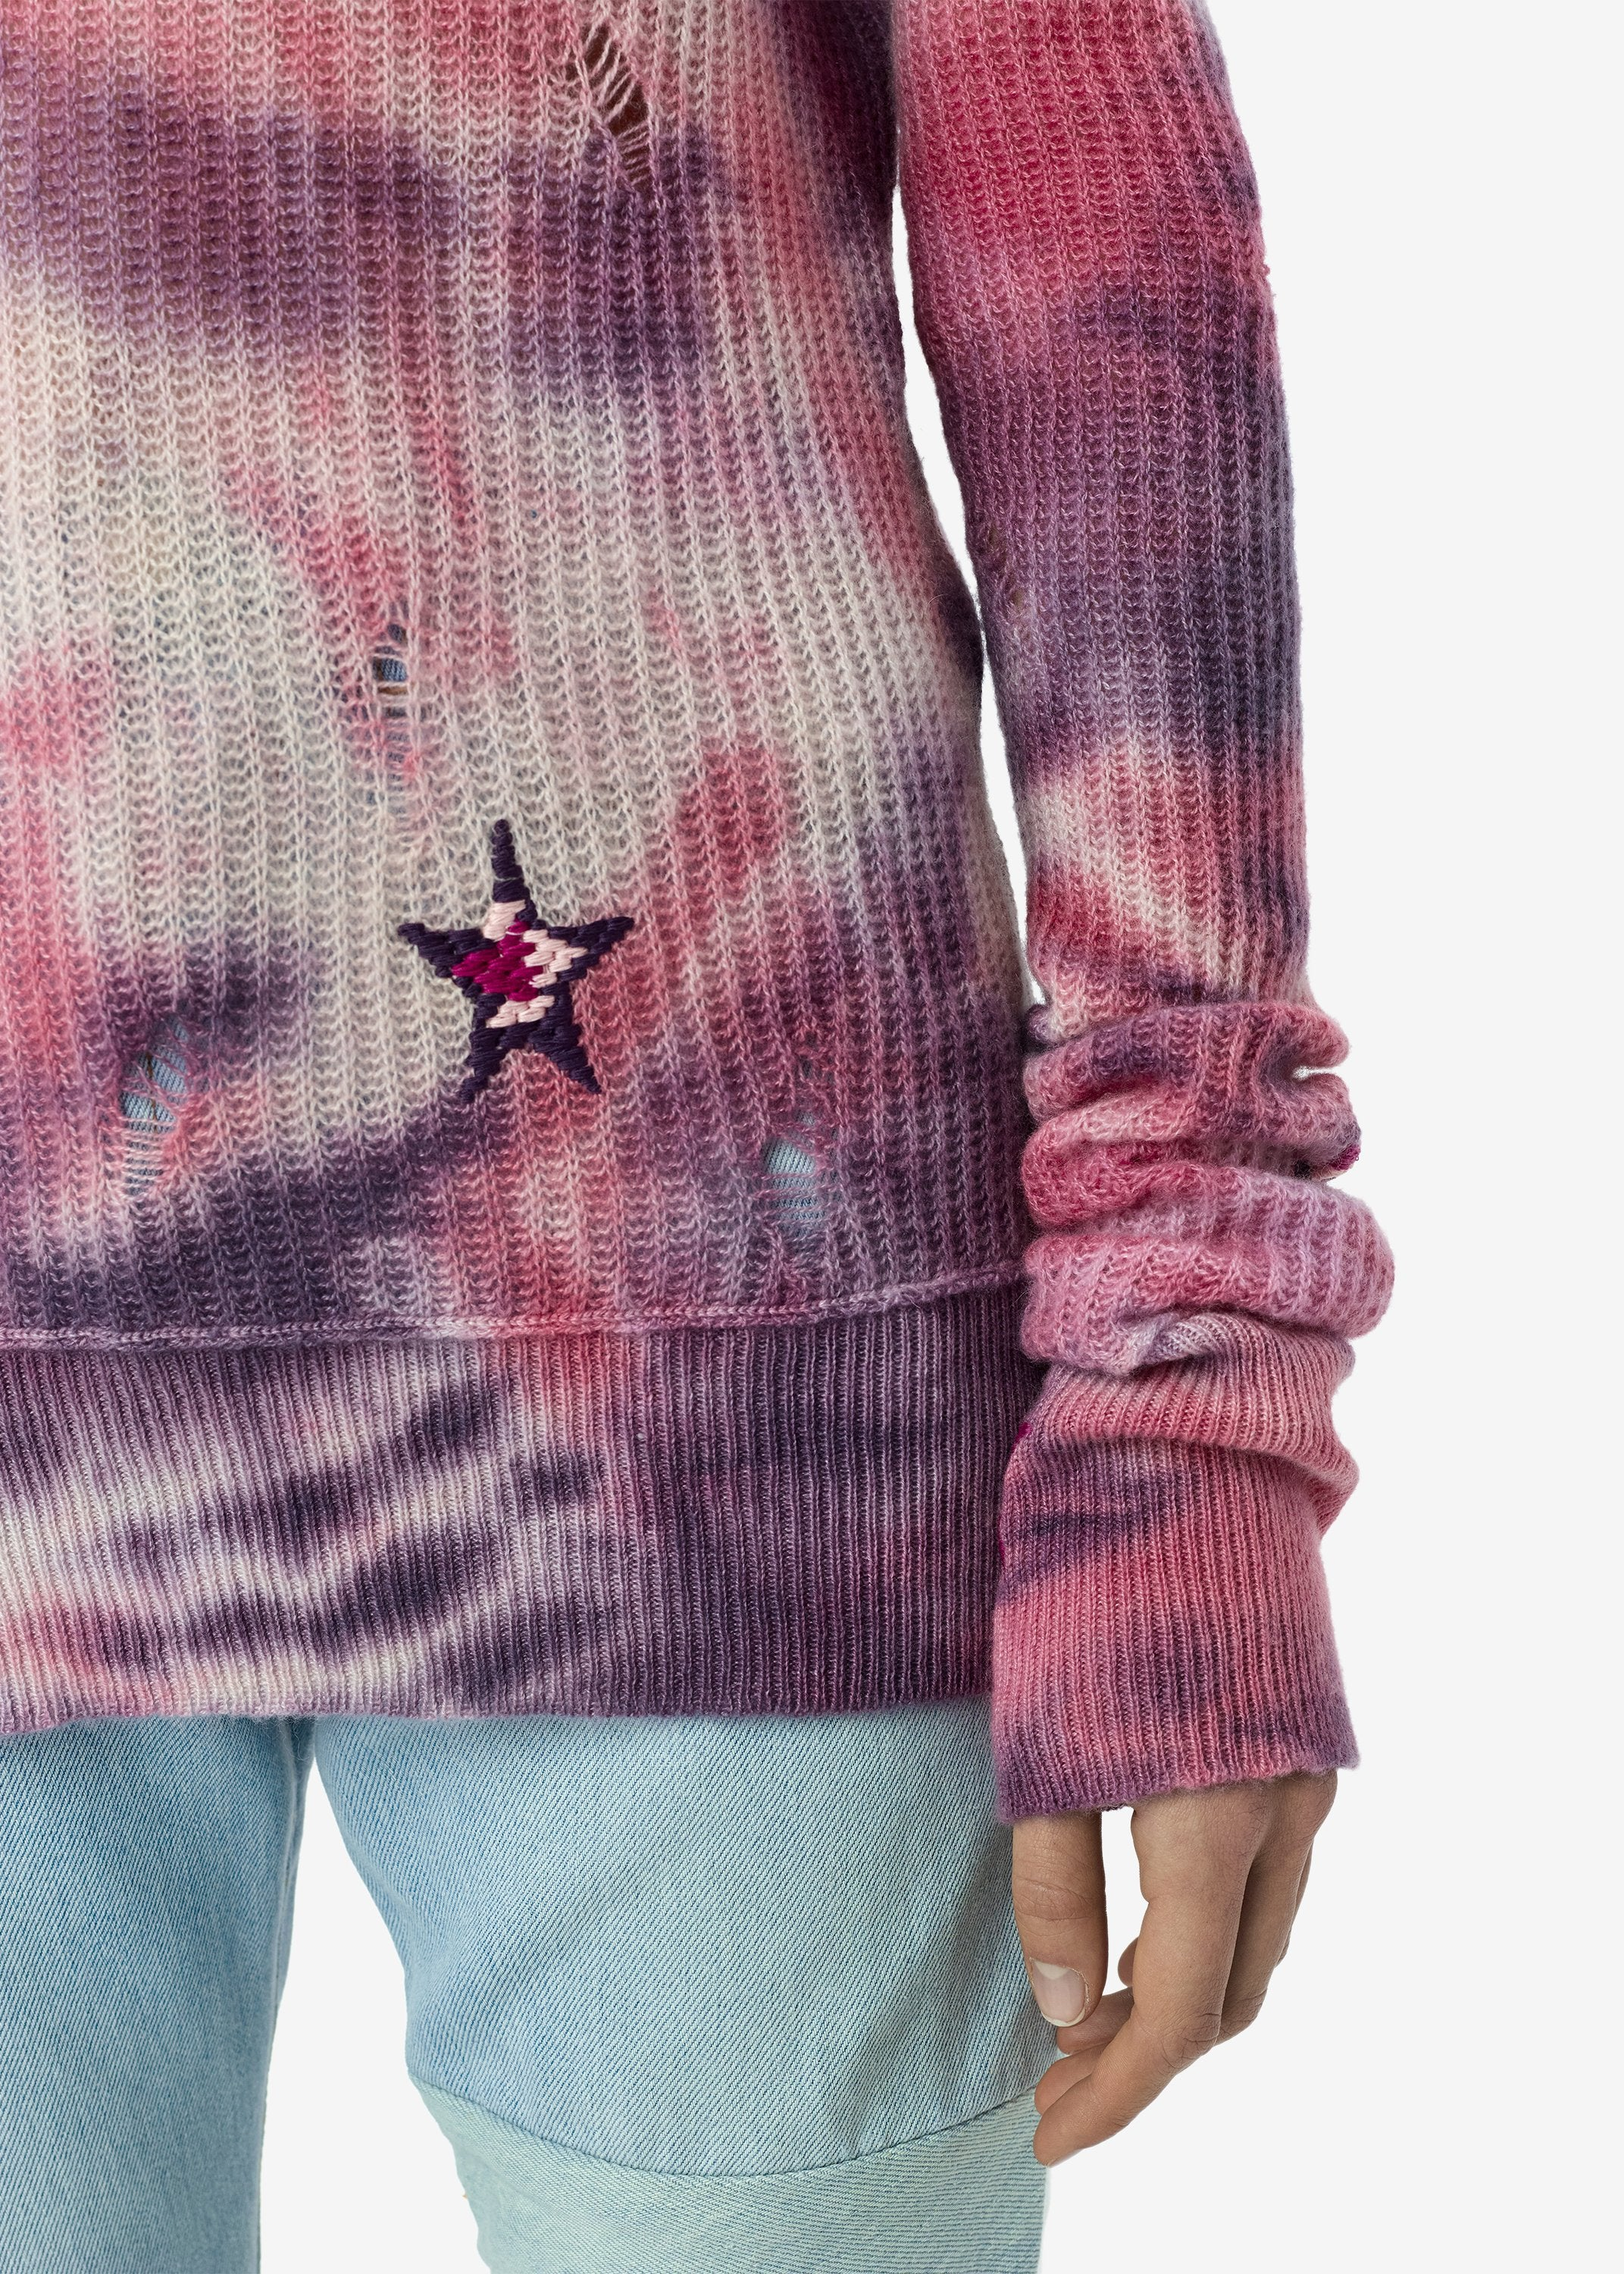 tie-dye-stars-sweater-multi-color-image-5